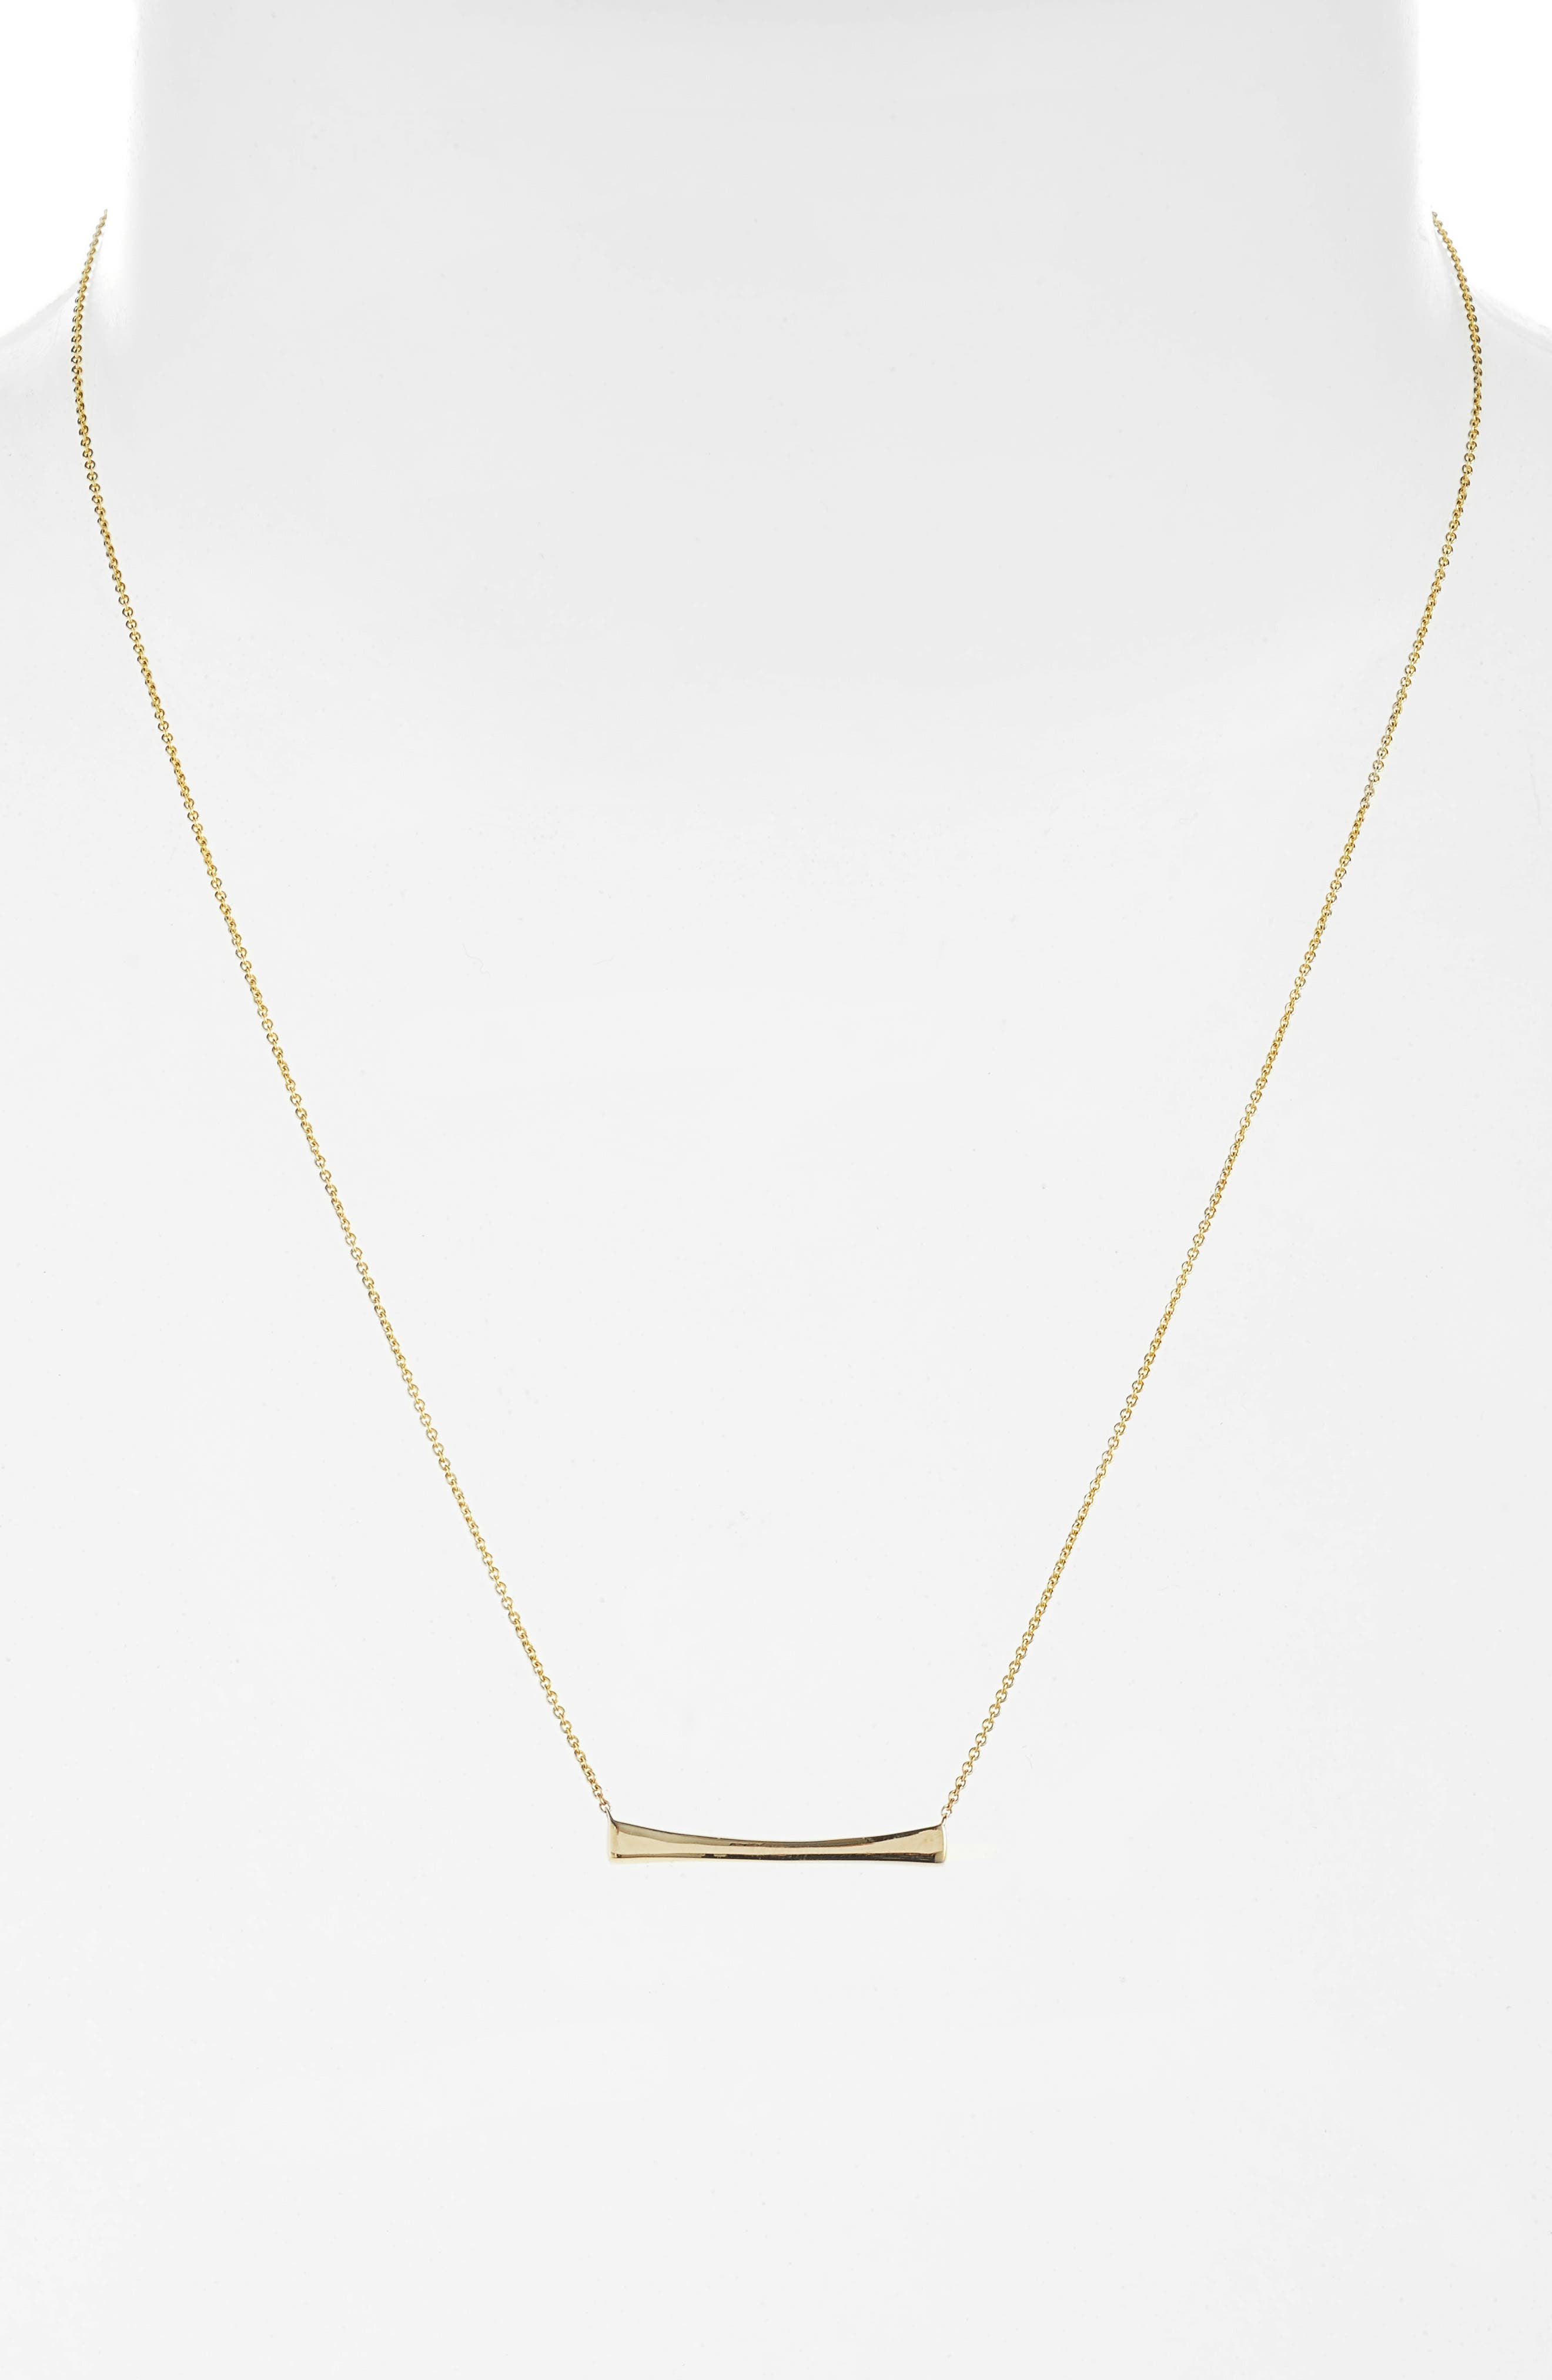 Curved Bar Pendant Necklace,                             Alternate thumbnail 2, color,                             YELLOW GOLD